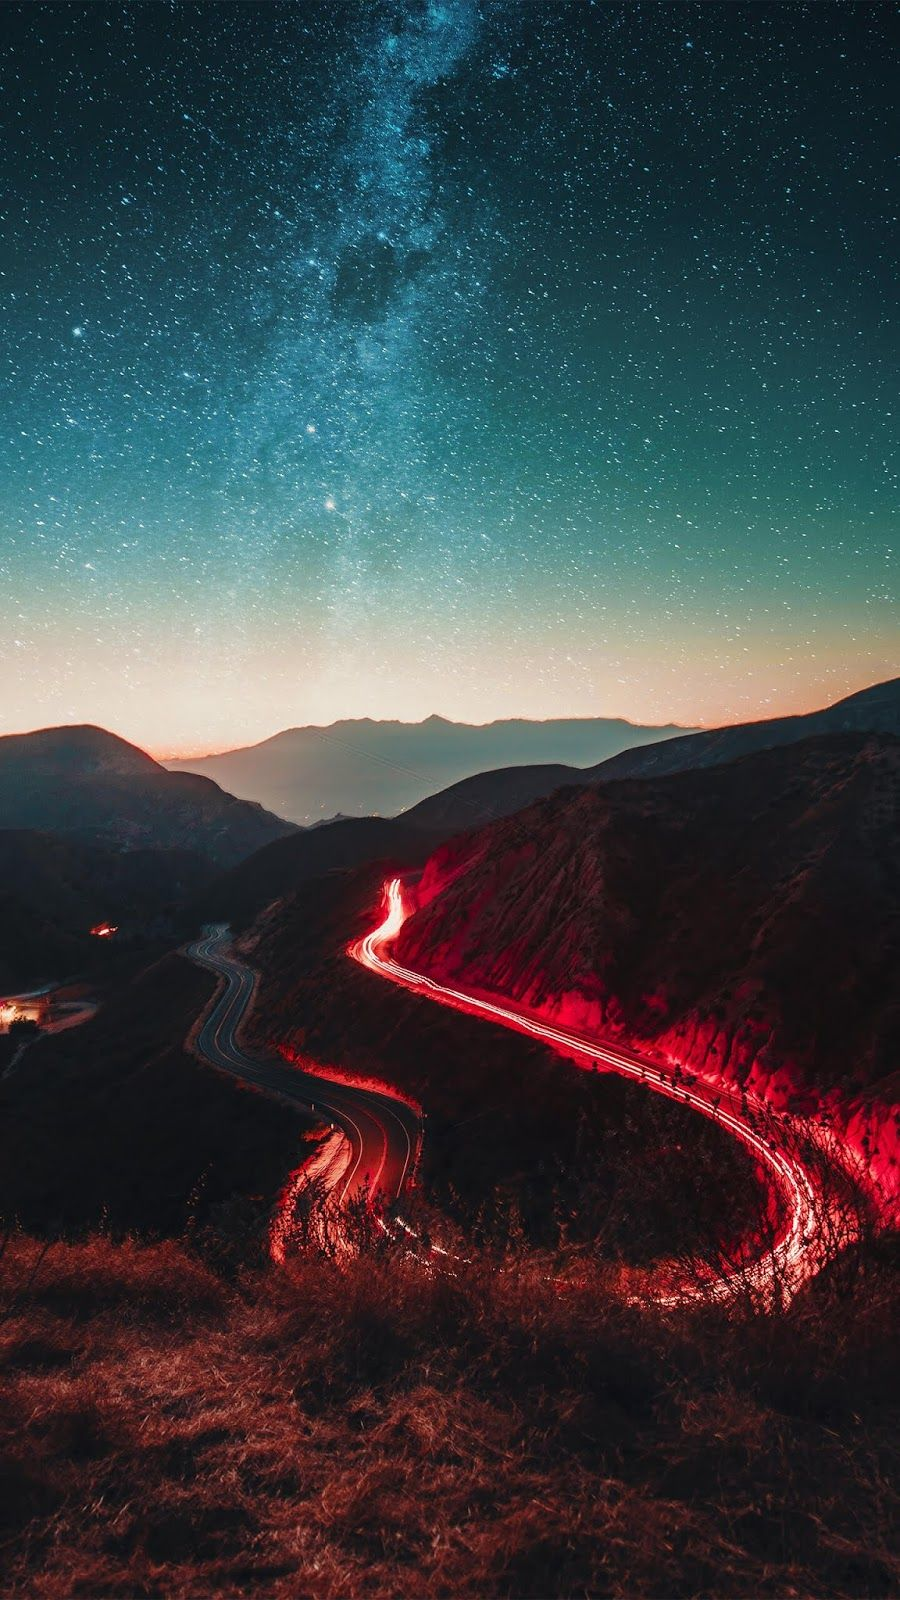 Road in the starry night Nature wallpaper, Starry night